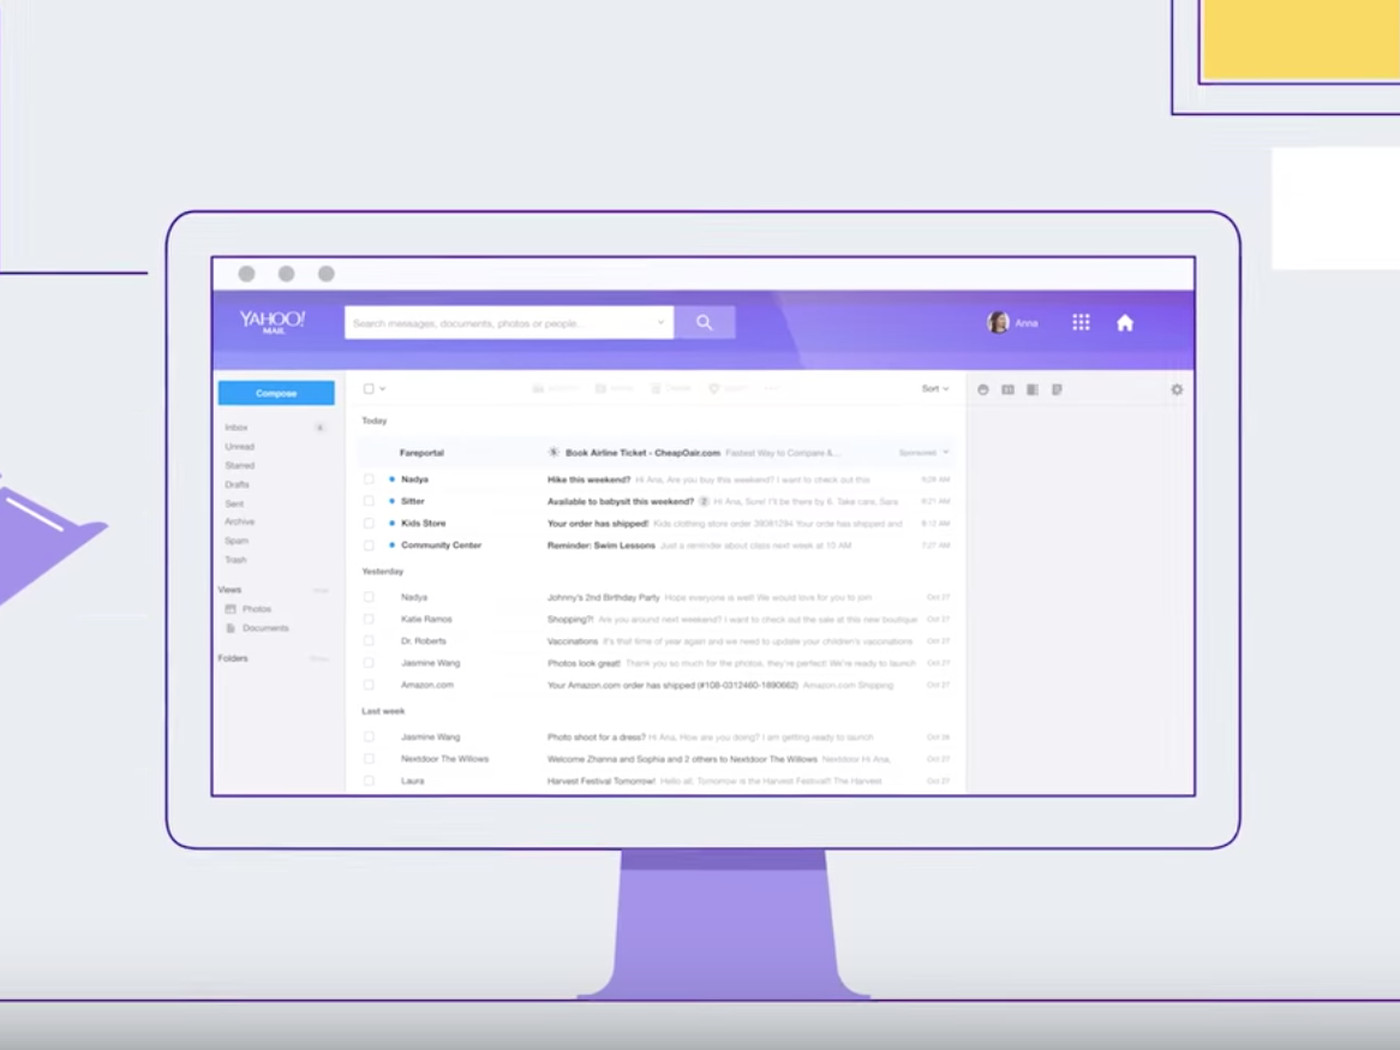 Yahoo Mail debuts complete overhaul, introduces Yahoo Mail Pro - The